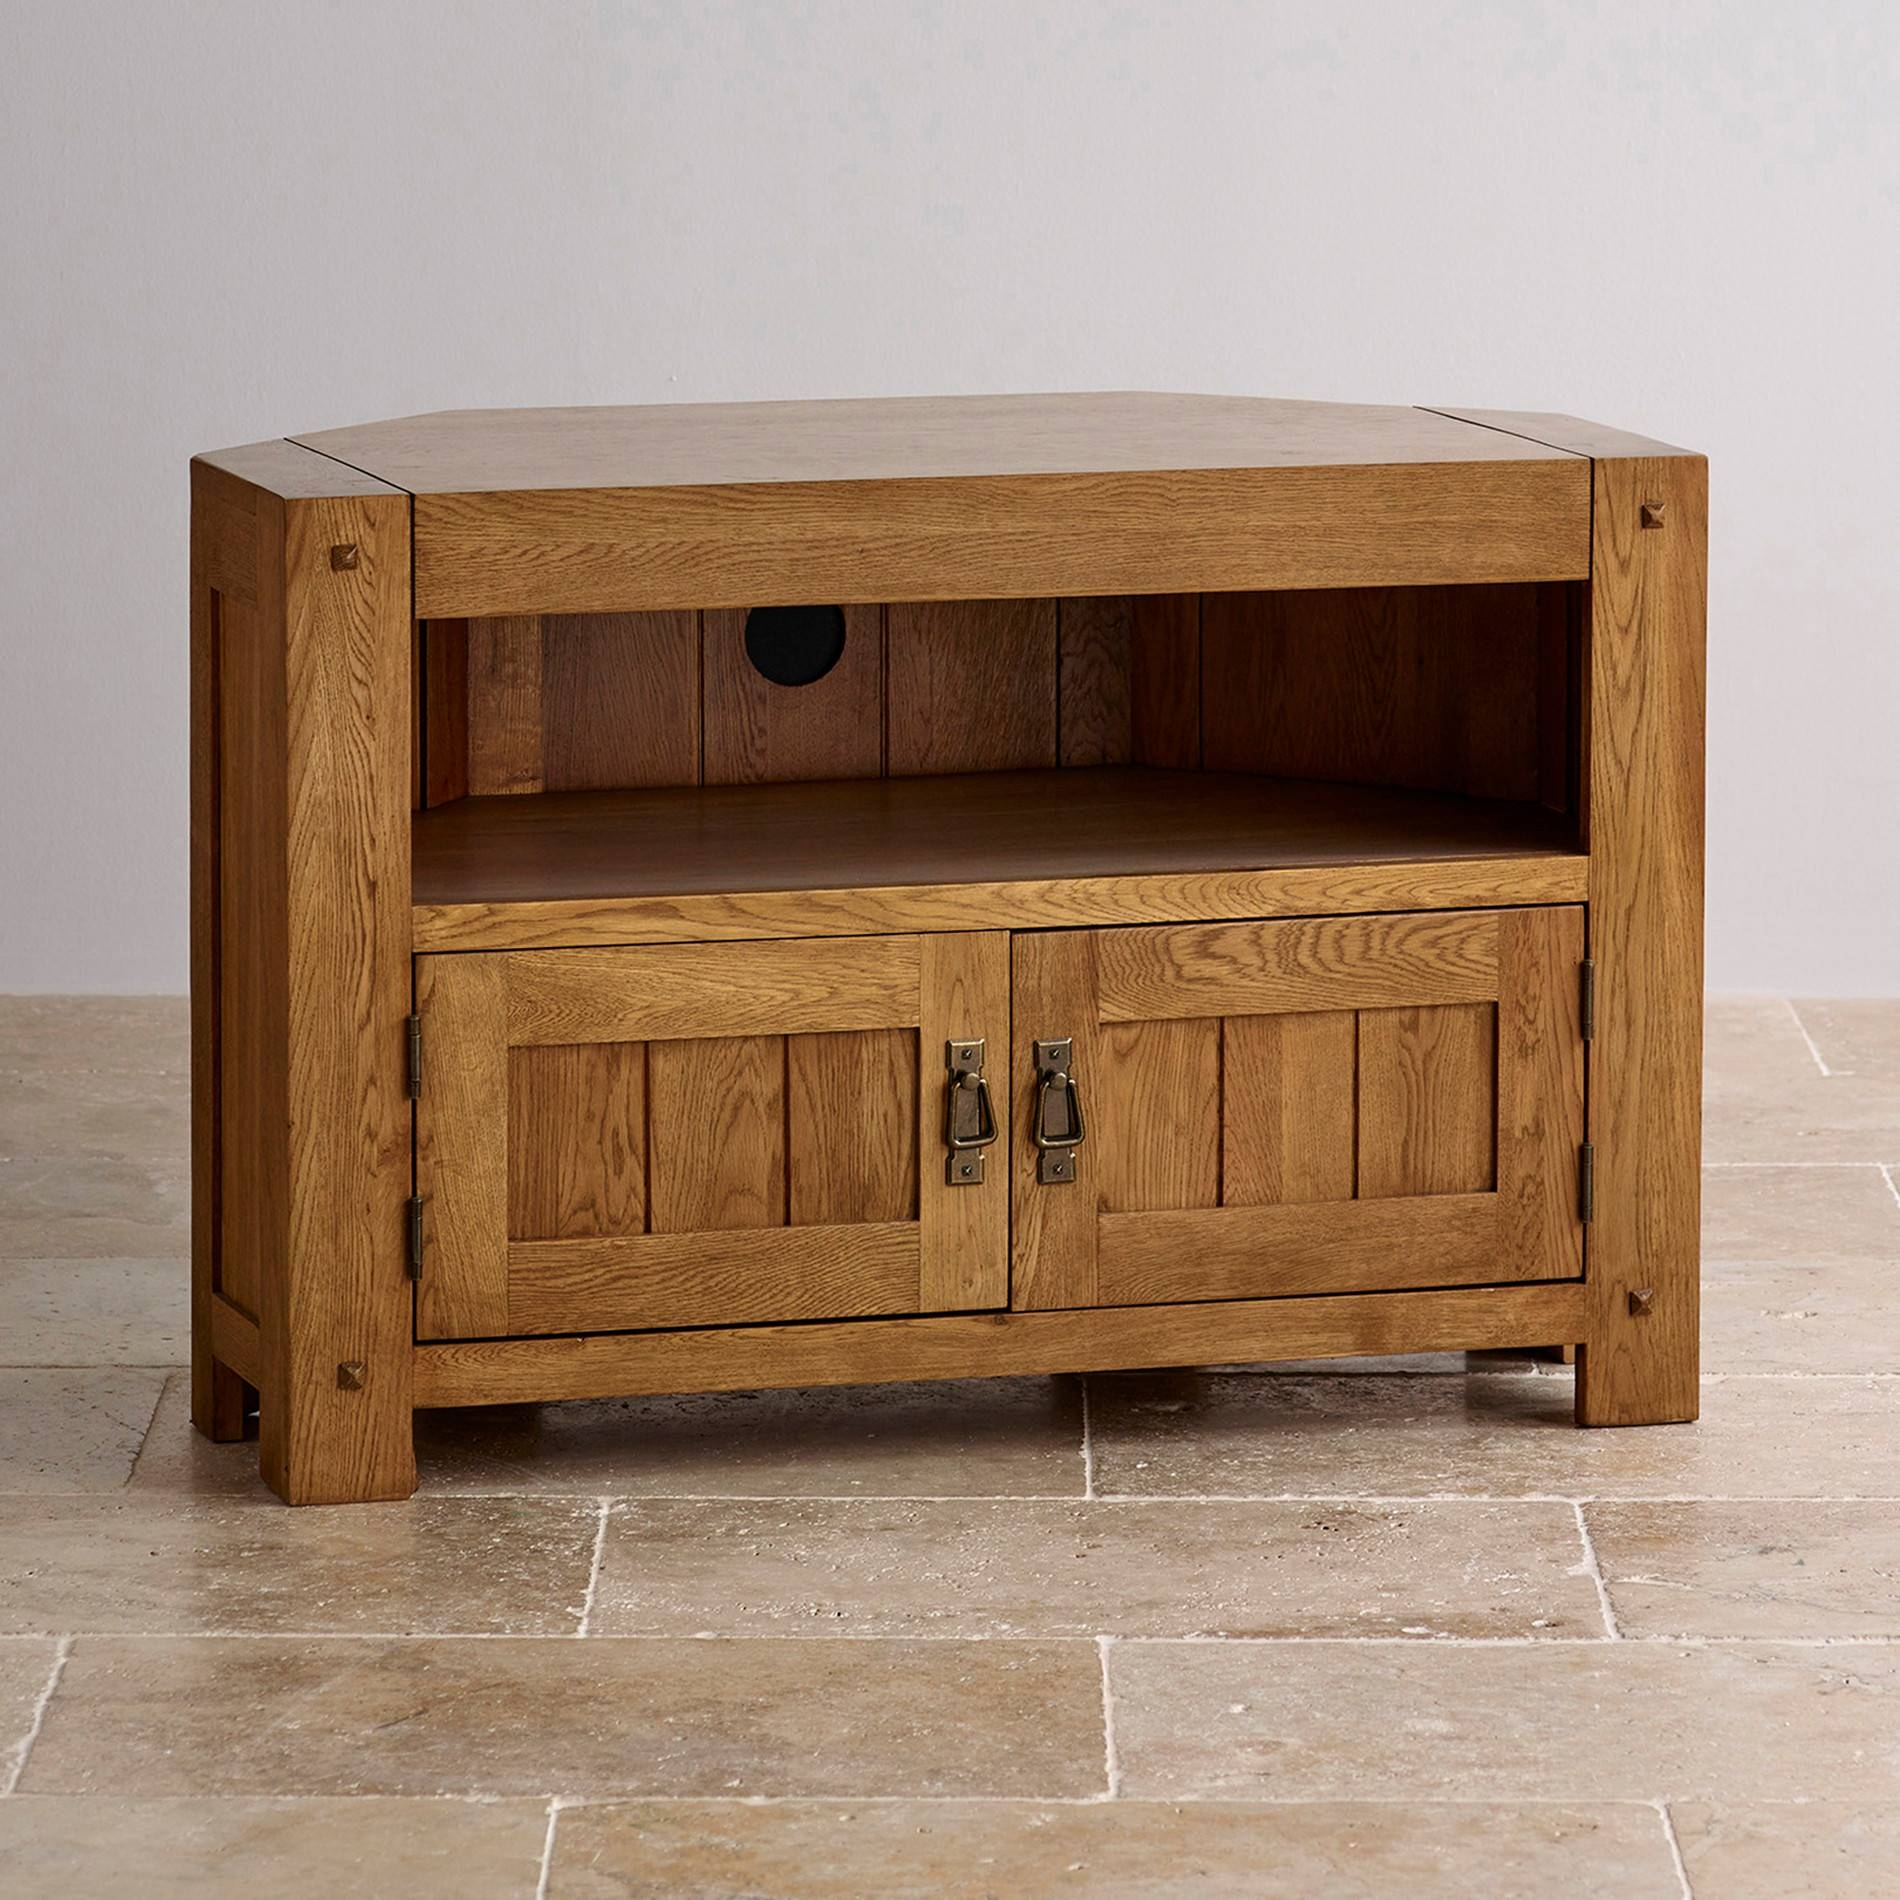 Quercus Corner Tv Cabinet In Rustic Oak | Oak Furniture Land with Solid Oak Corner Tv Cabinets (Image 14 of 15)